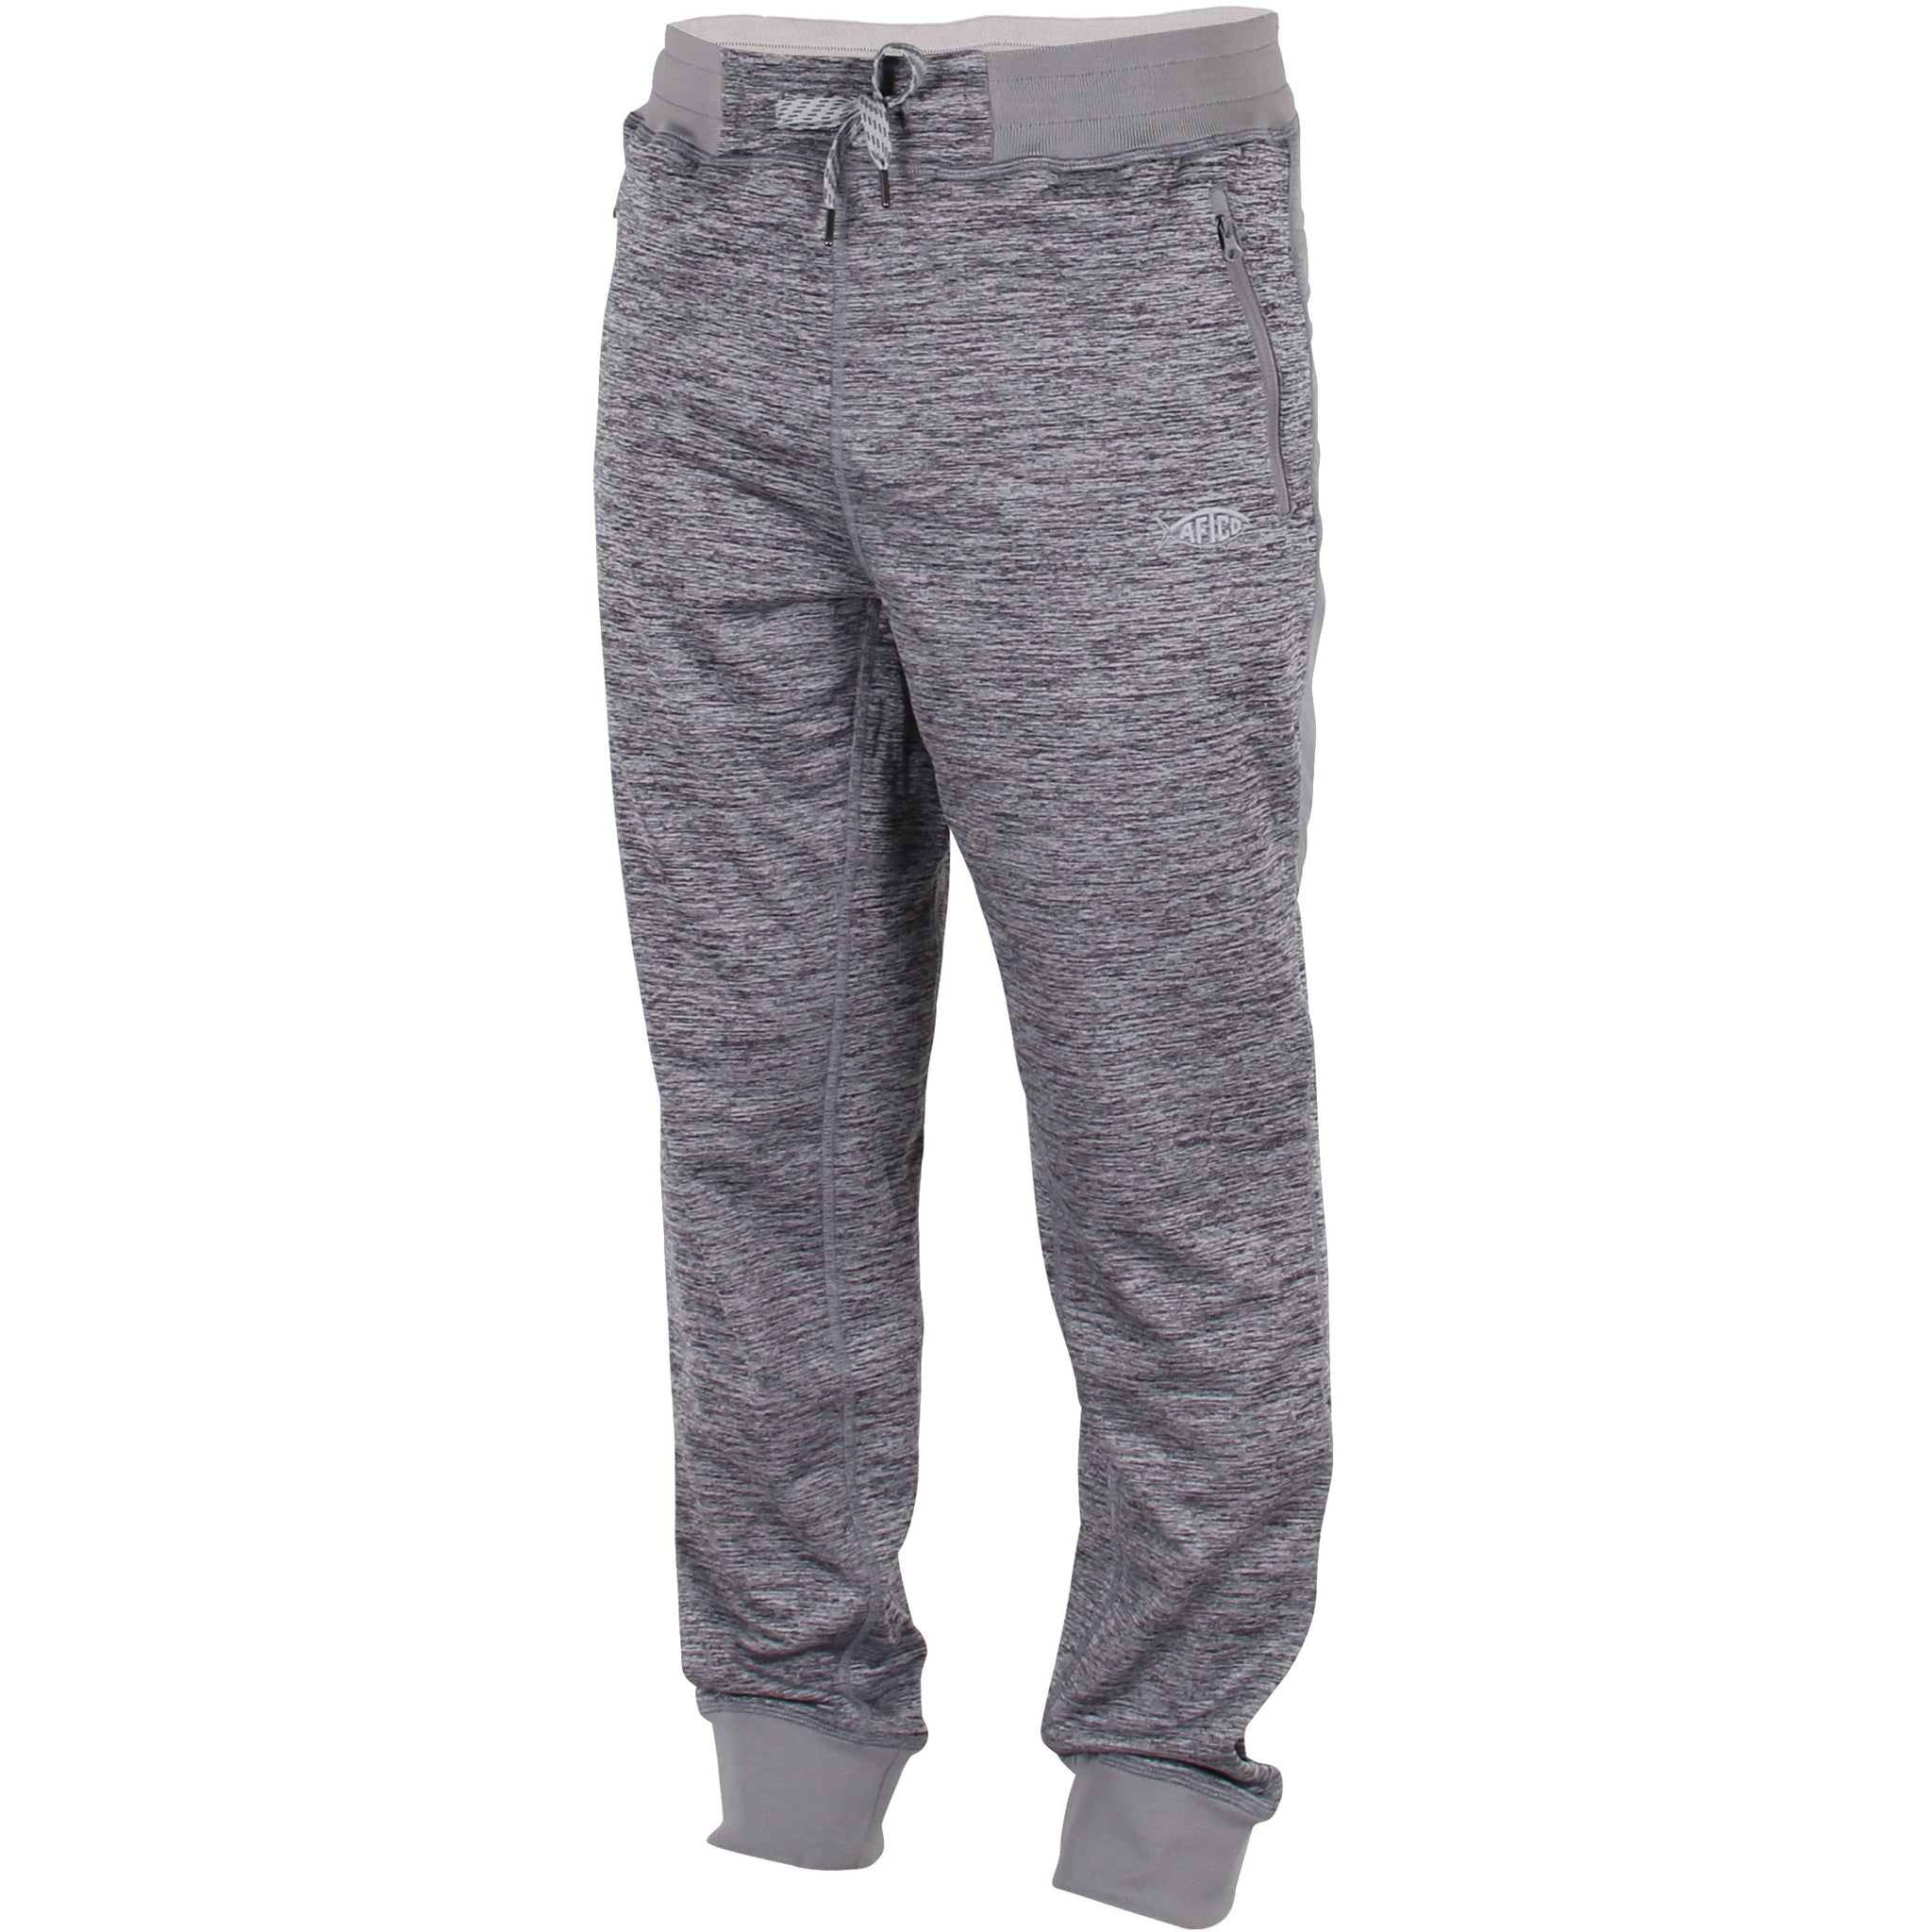 Hexatron Technical Jogger